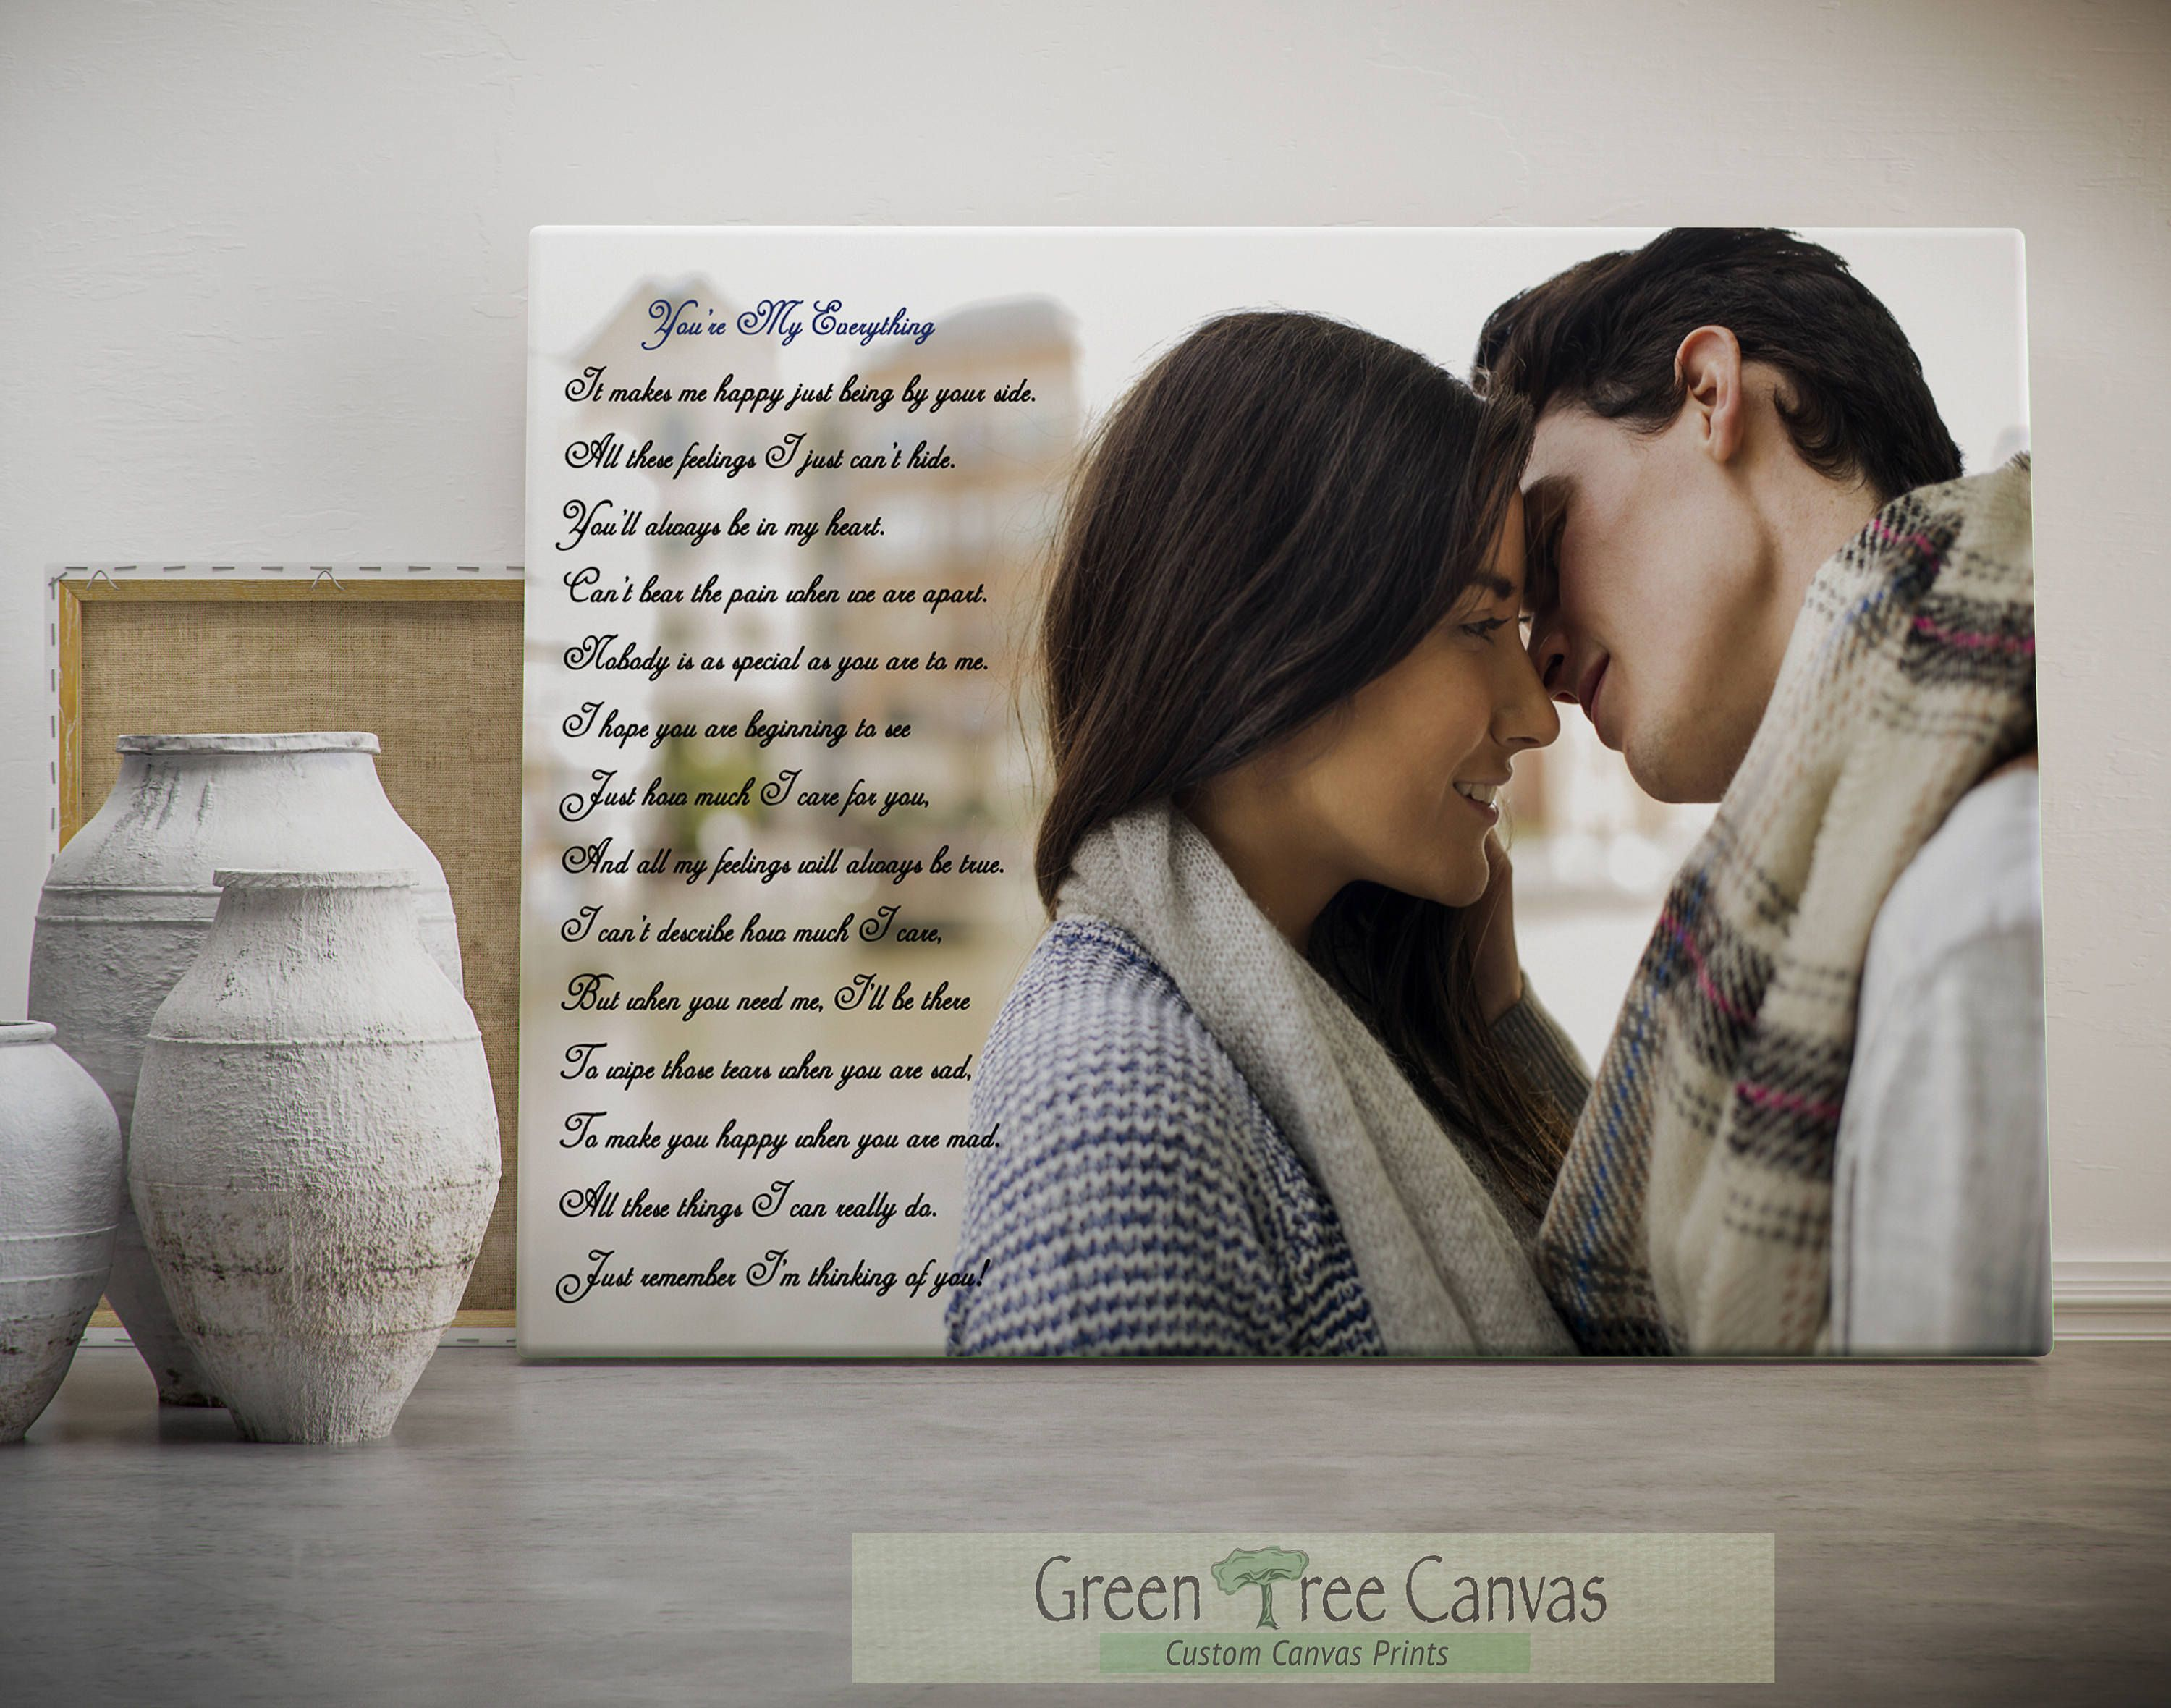 Photo To Canvas With Custom Poetry, Personalized Poetry, Personalized Gifts